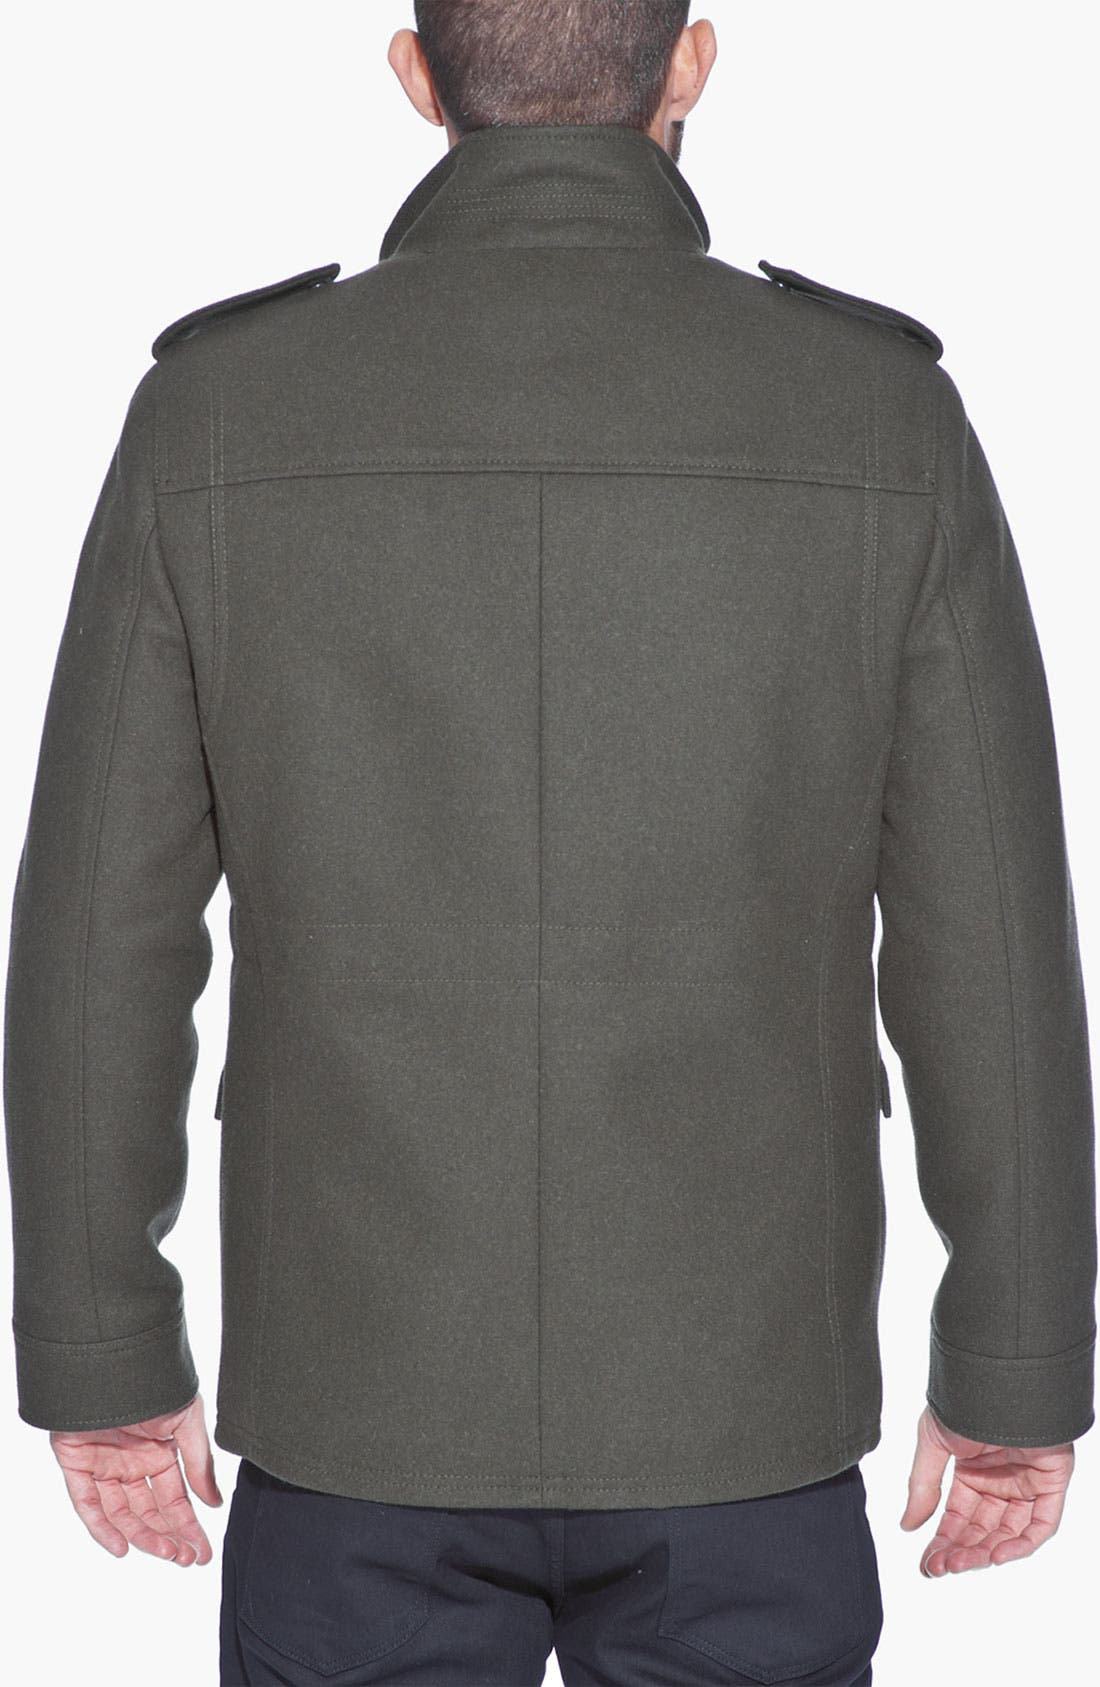 Alternate Image 2  - Andrew Marc 'Fraction' Wool Blend Jacket